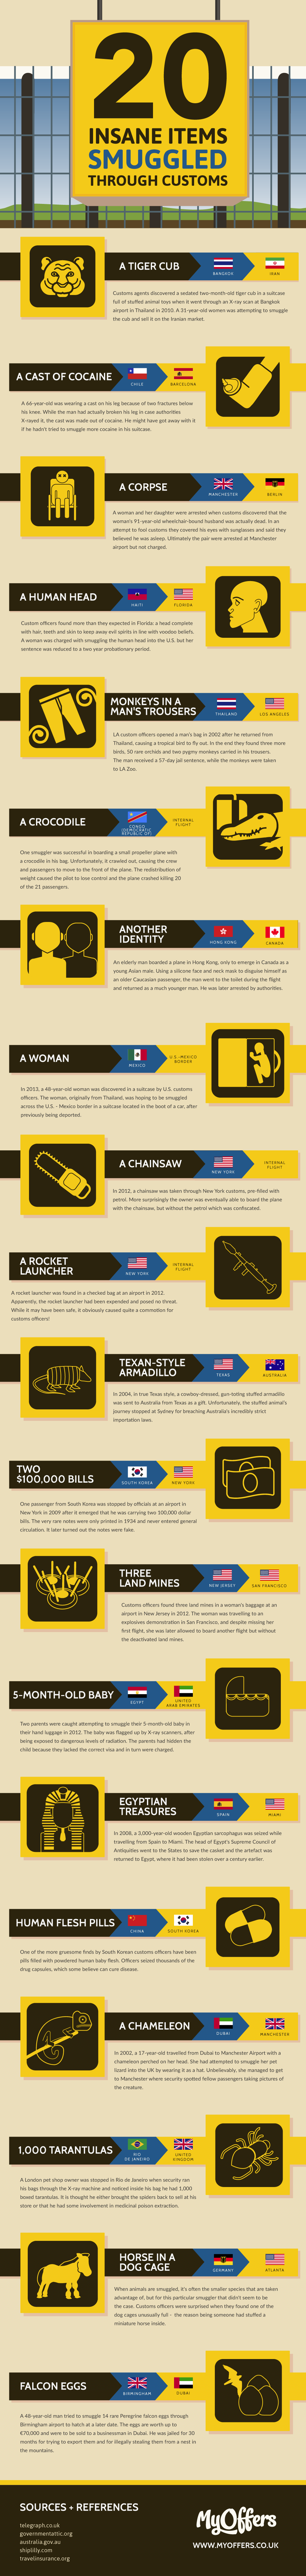 20 Insane Items Smuggled Through Customs #Infographic